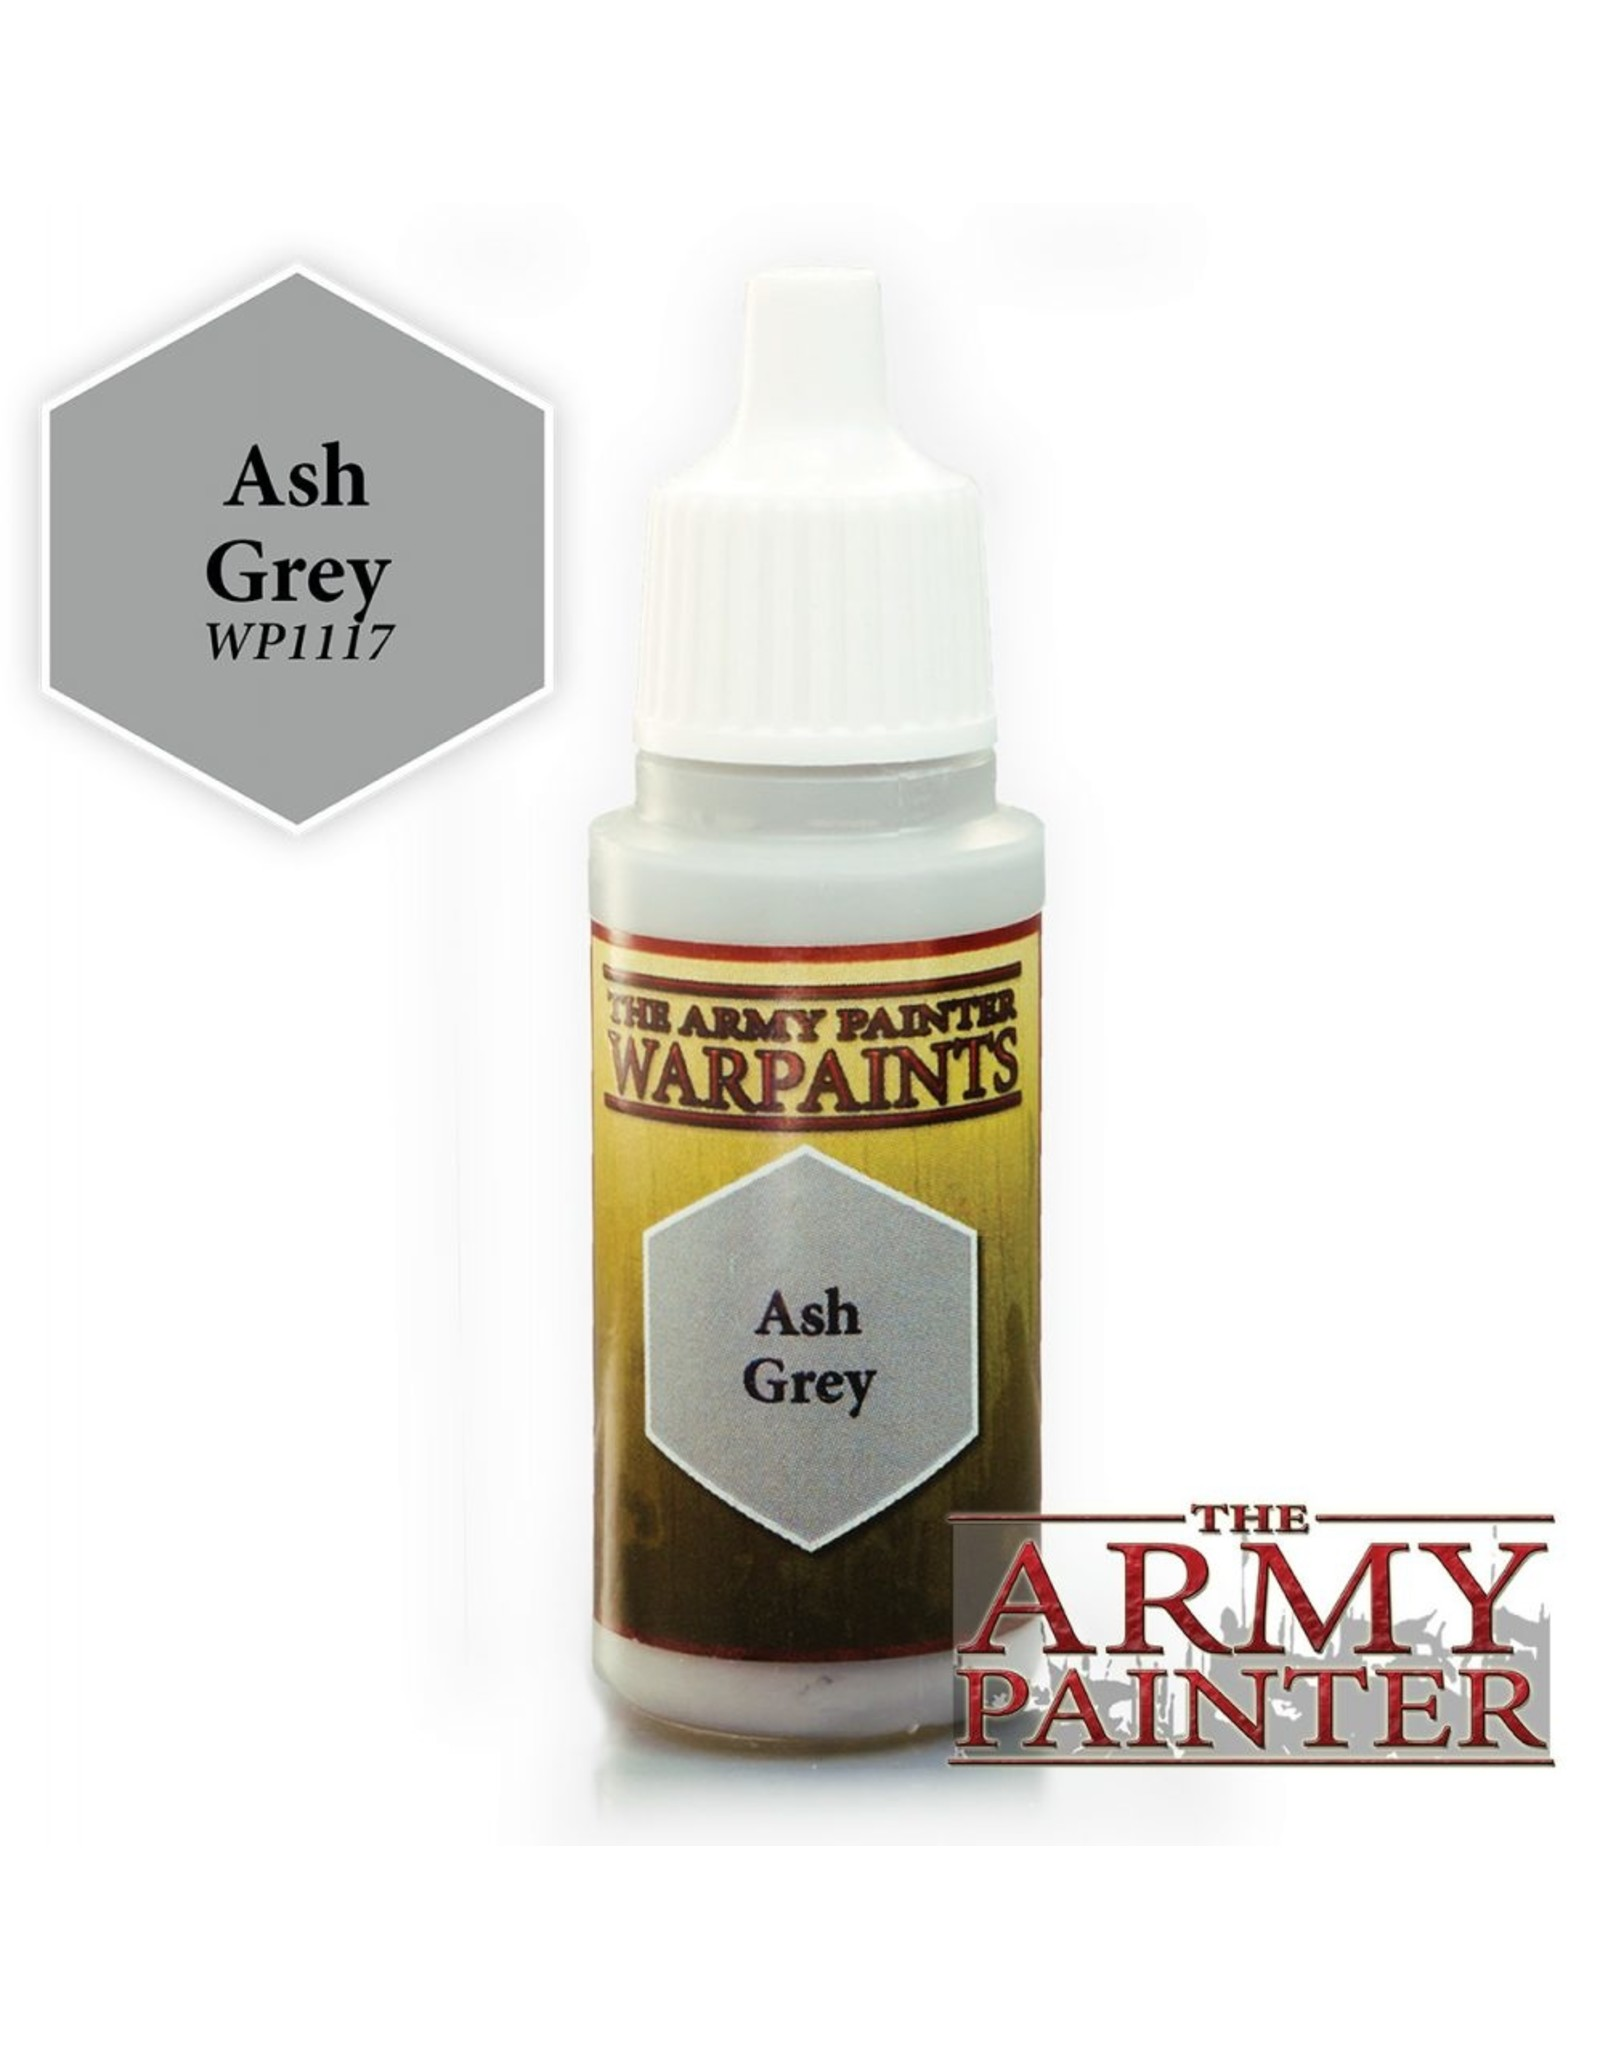 THE ARMY PAINTER ARMY PAINTER WARPAINTS ASH GREY